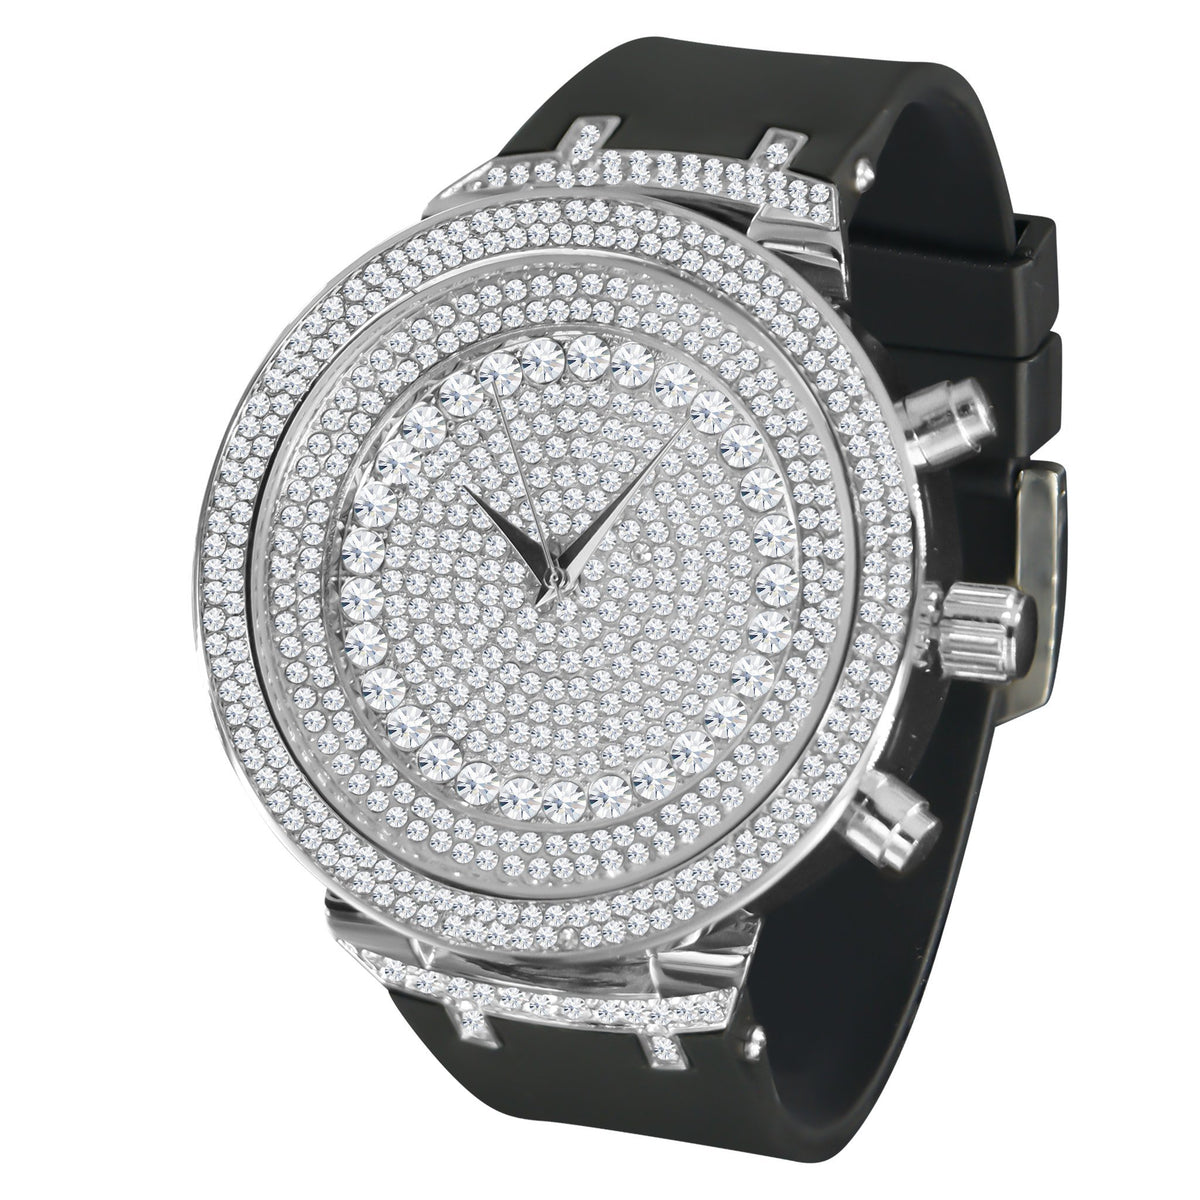 Bling Watch » 561031